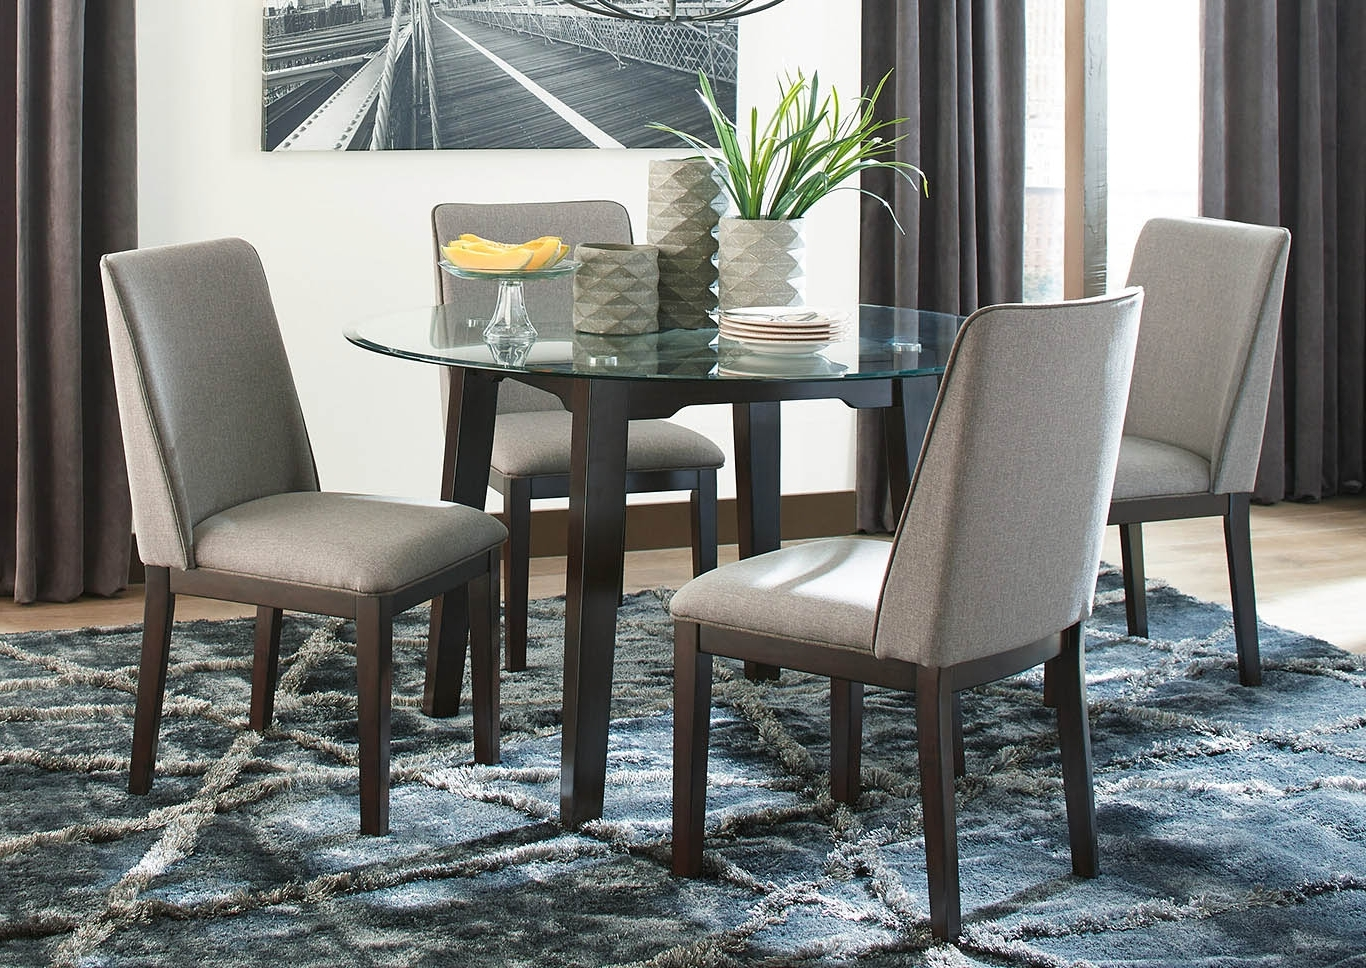 Widely Used Craftsman 5 Piece Round Dining Sets With Uph Side Chairs Intended For Southside Furniture Chanceen 5 Piece Dining Room Set (View 25 of 25)